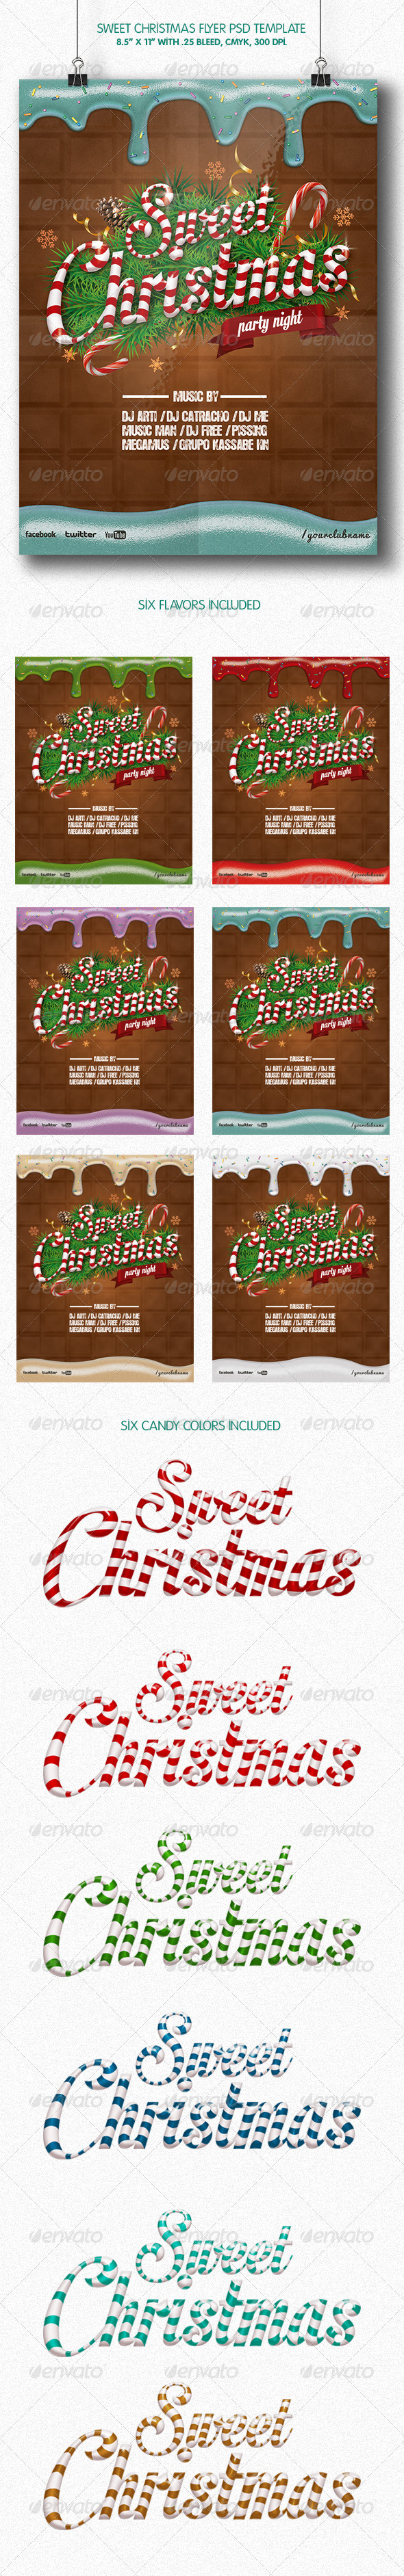 GraphicRiver Sweet Christmas Party 6114611